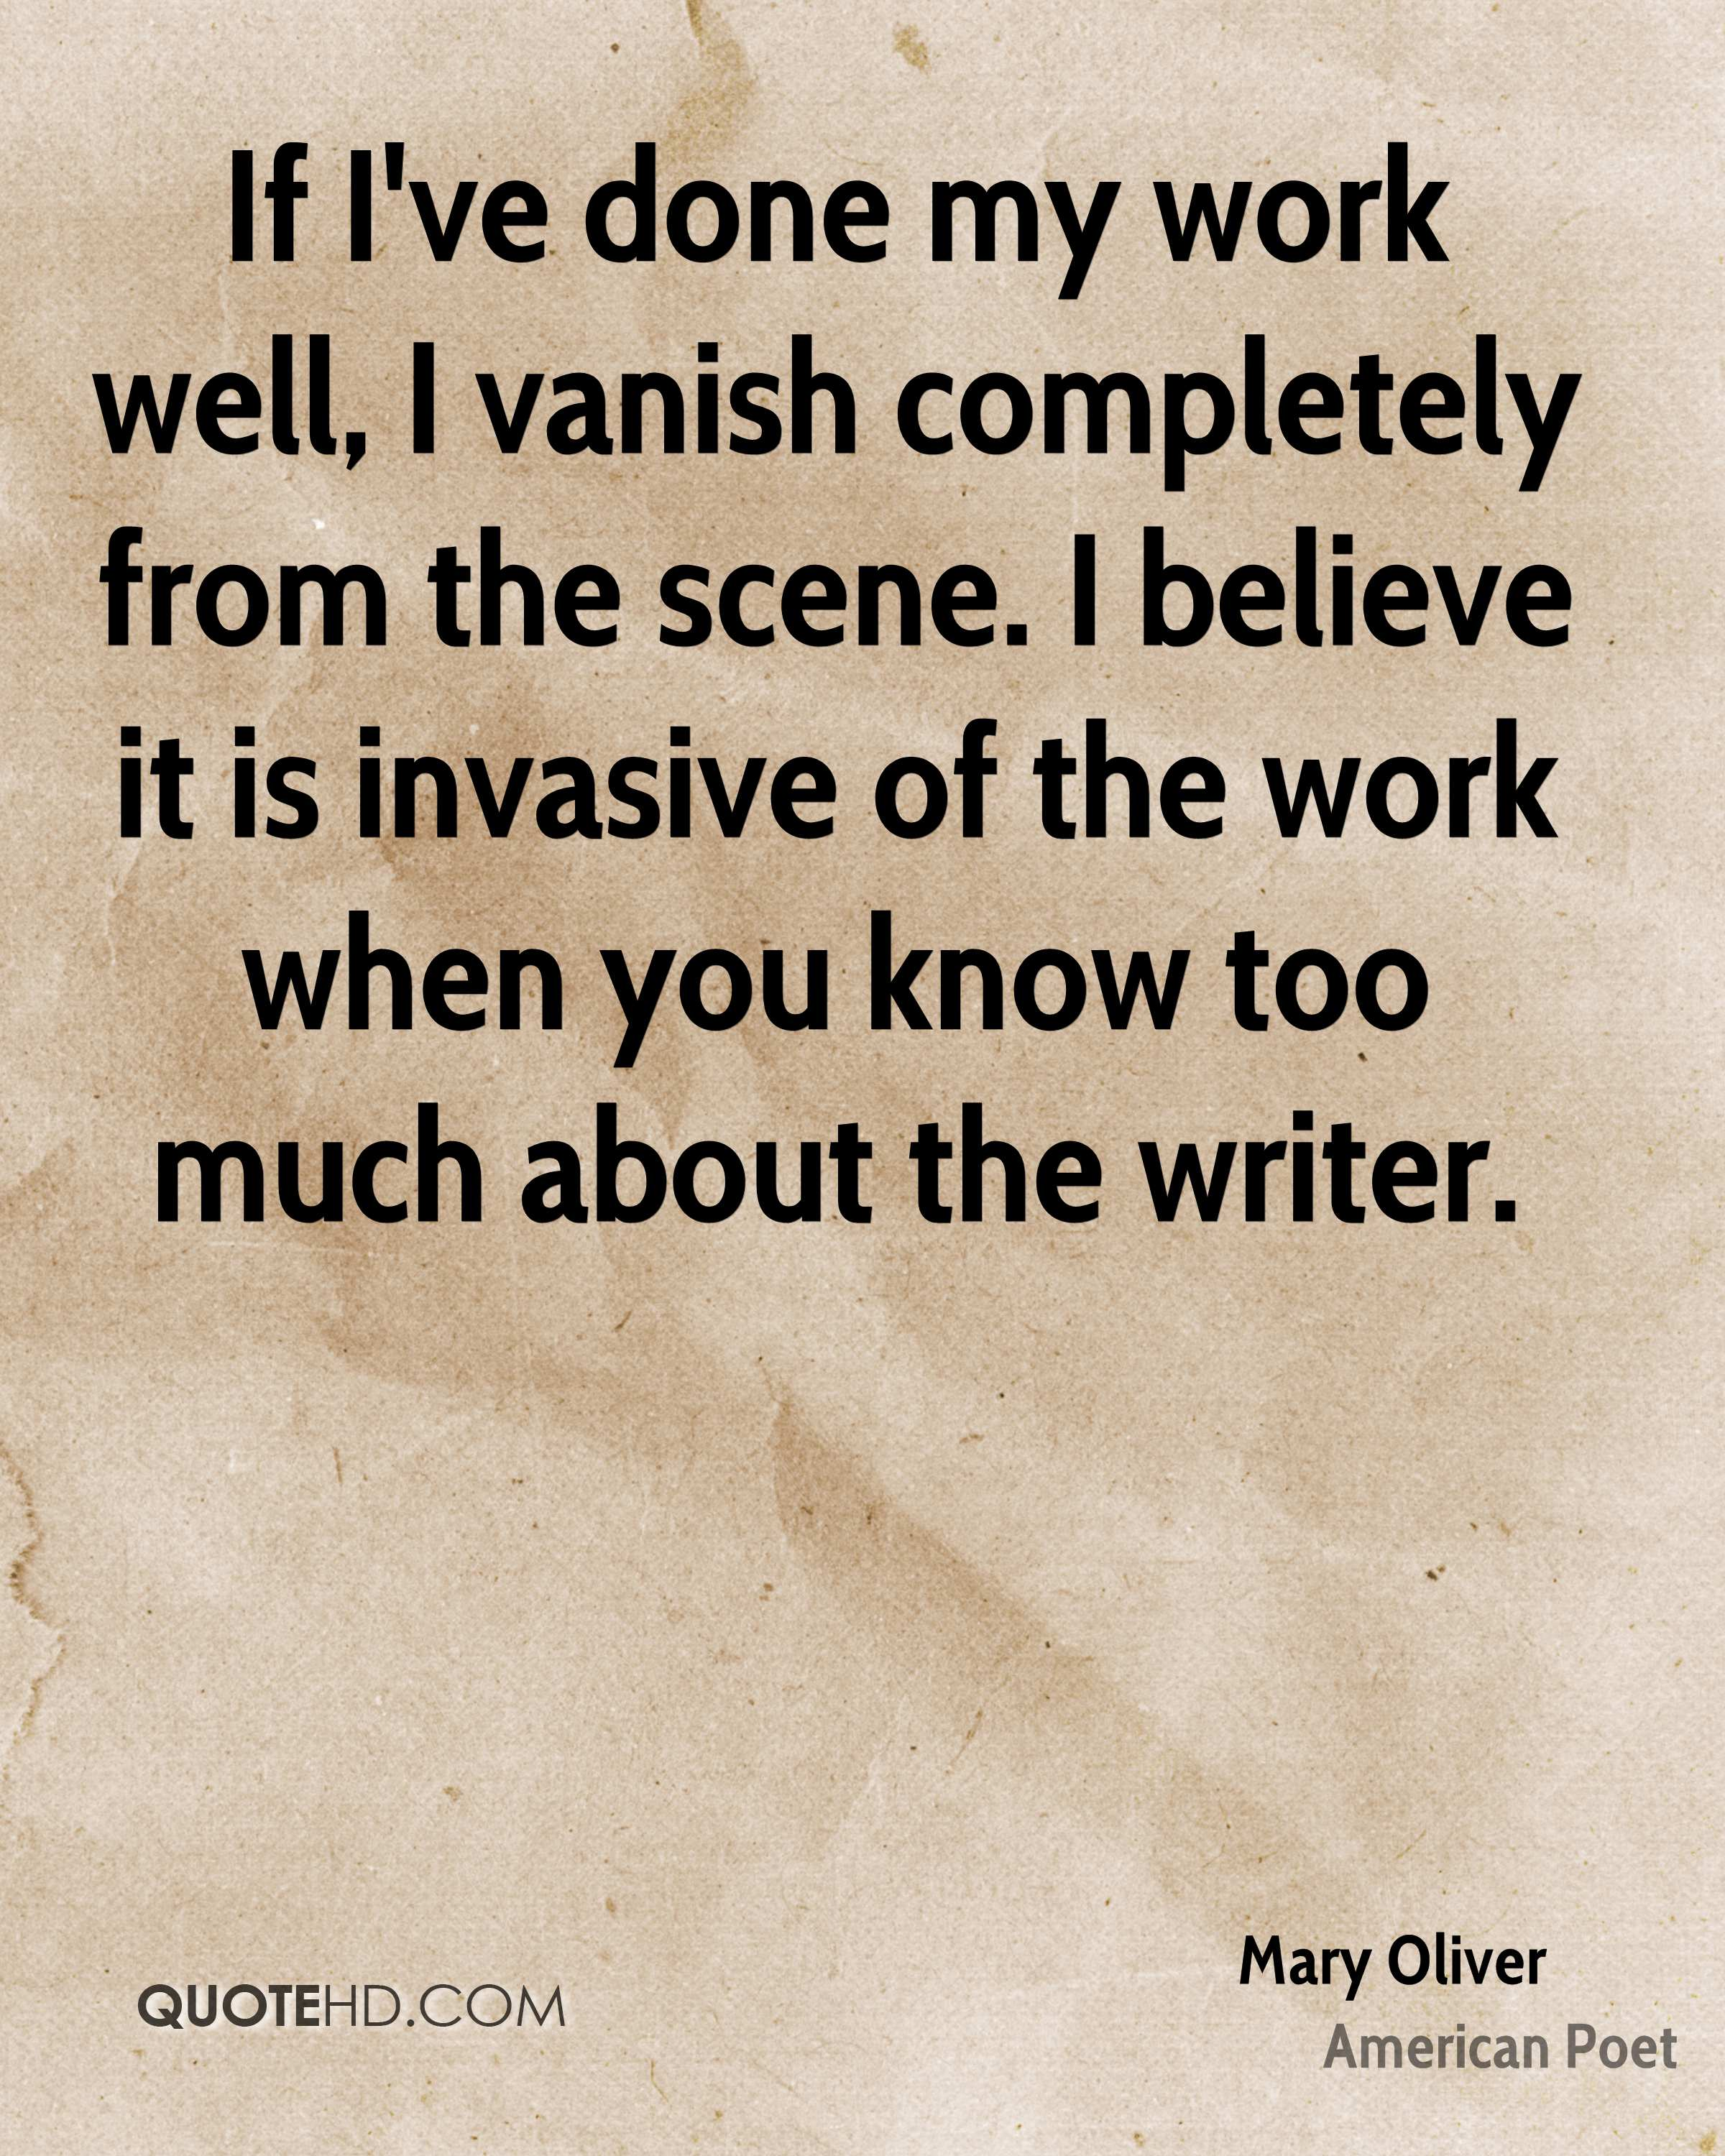 If I've done my work well, I vanish completely from the scene. I believe it is invasive of the work when you know too much about the writer.